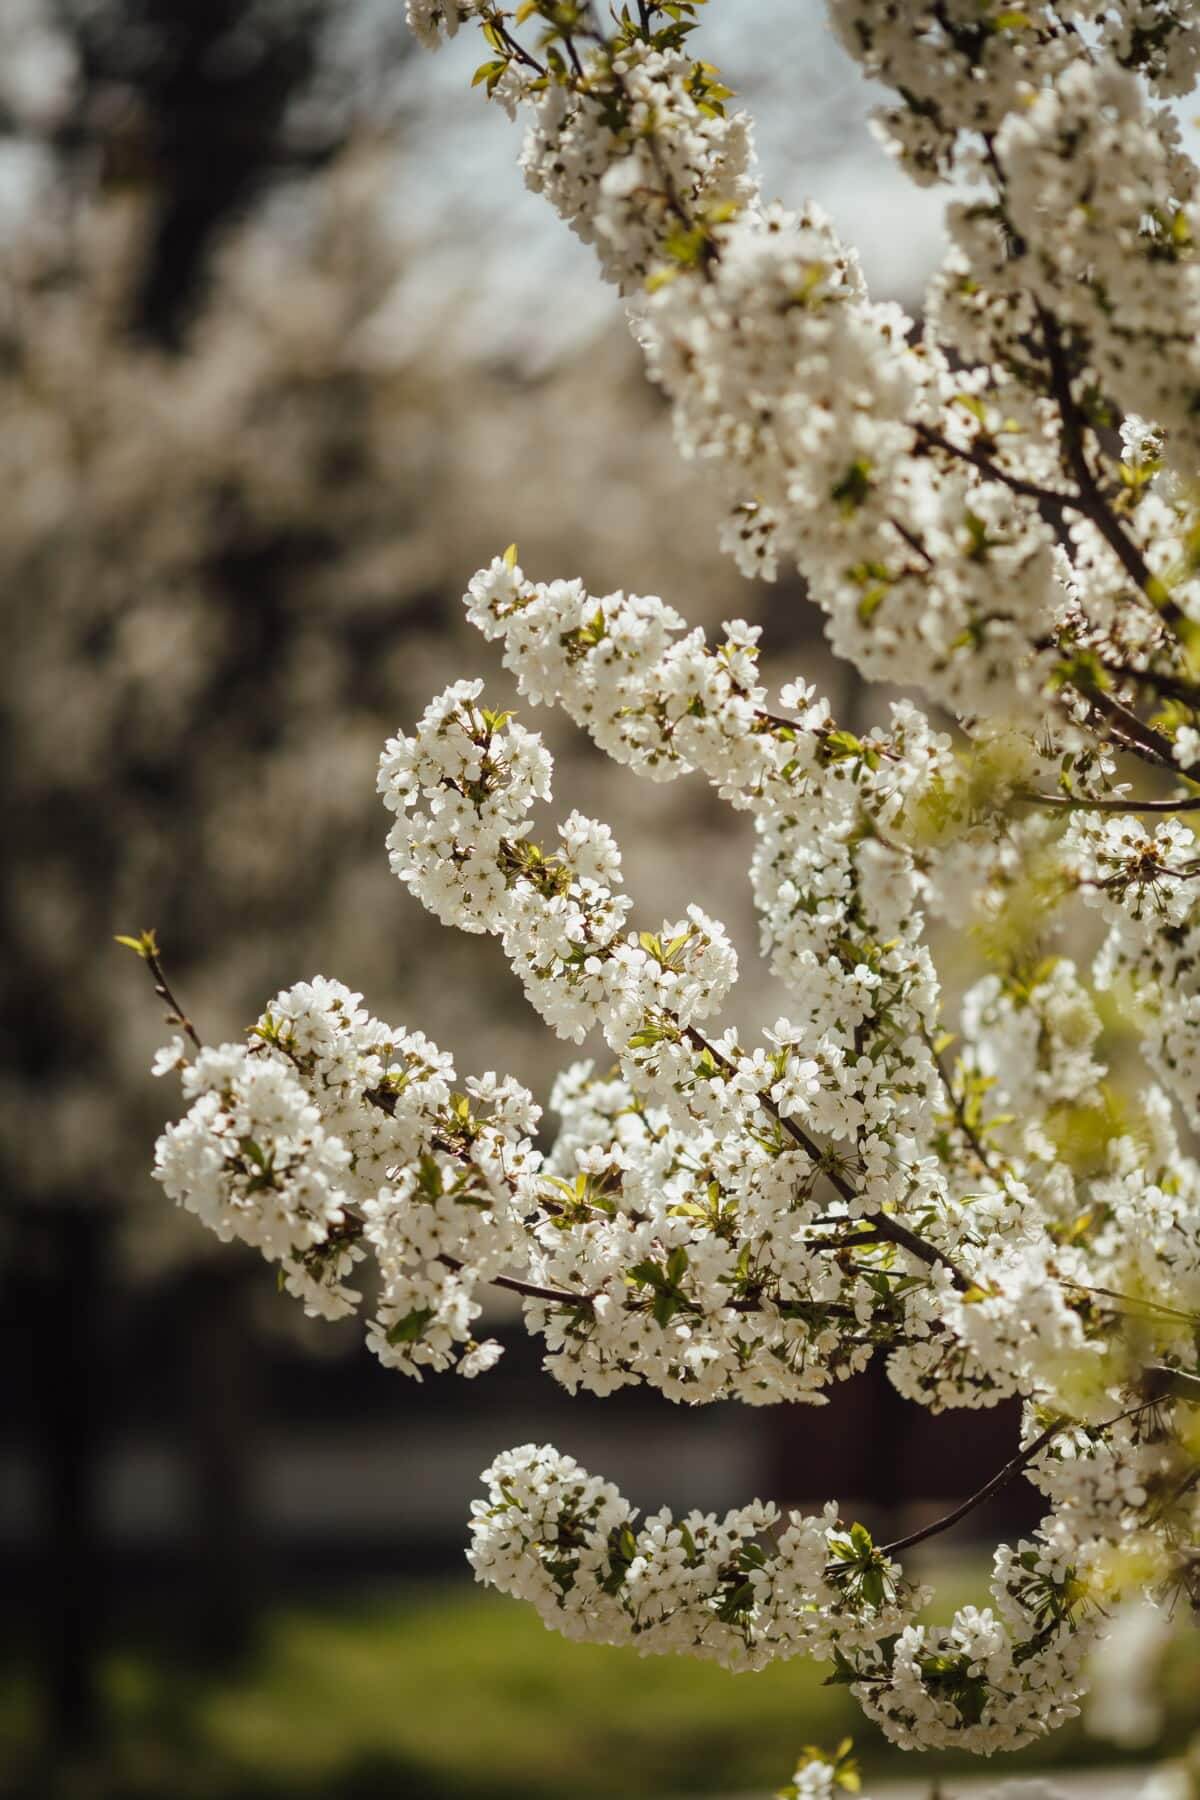 orchard, cherry, tree, herb, flower, shrub, plant, nature, blossom, spring